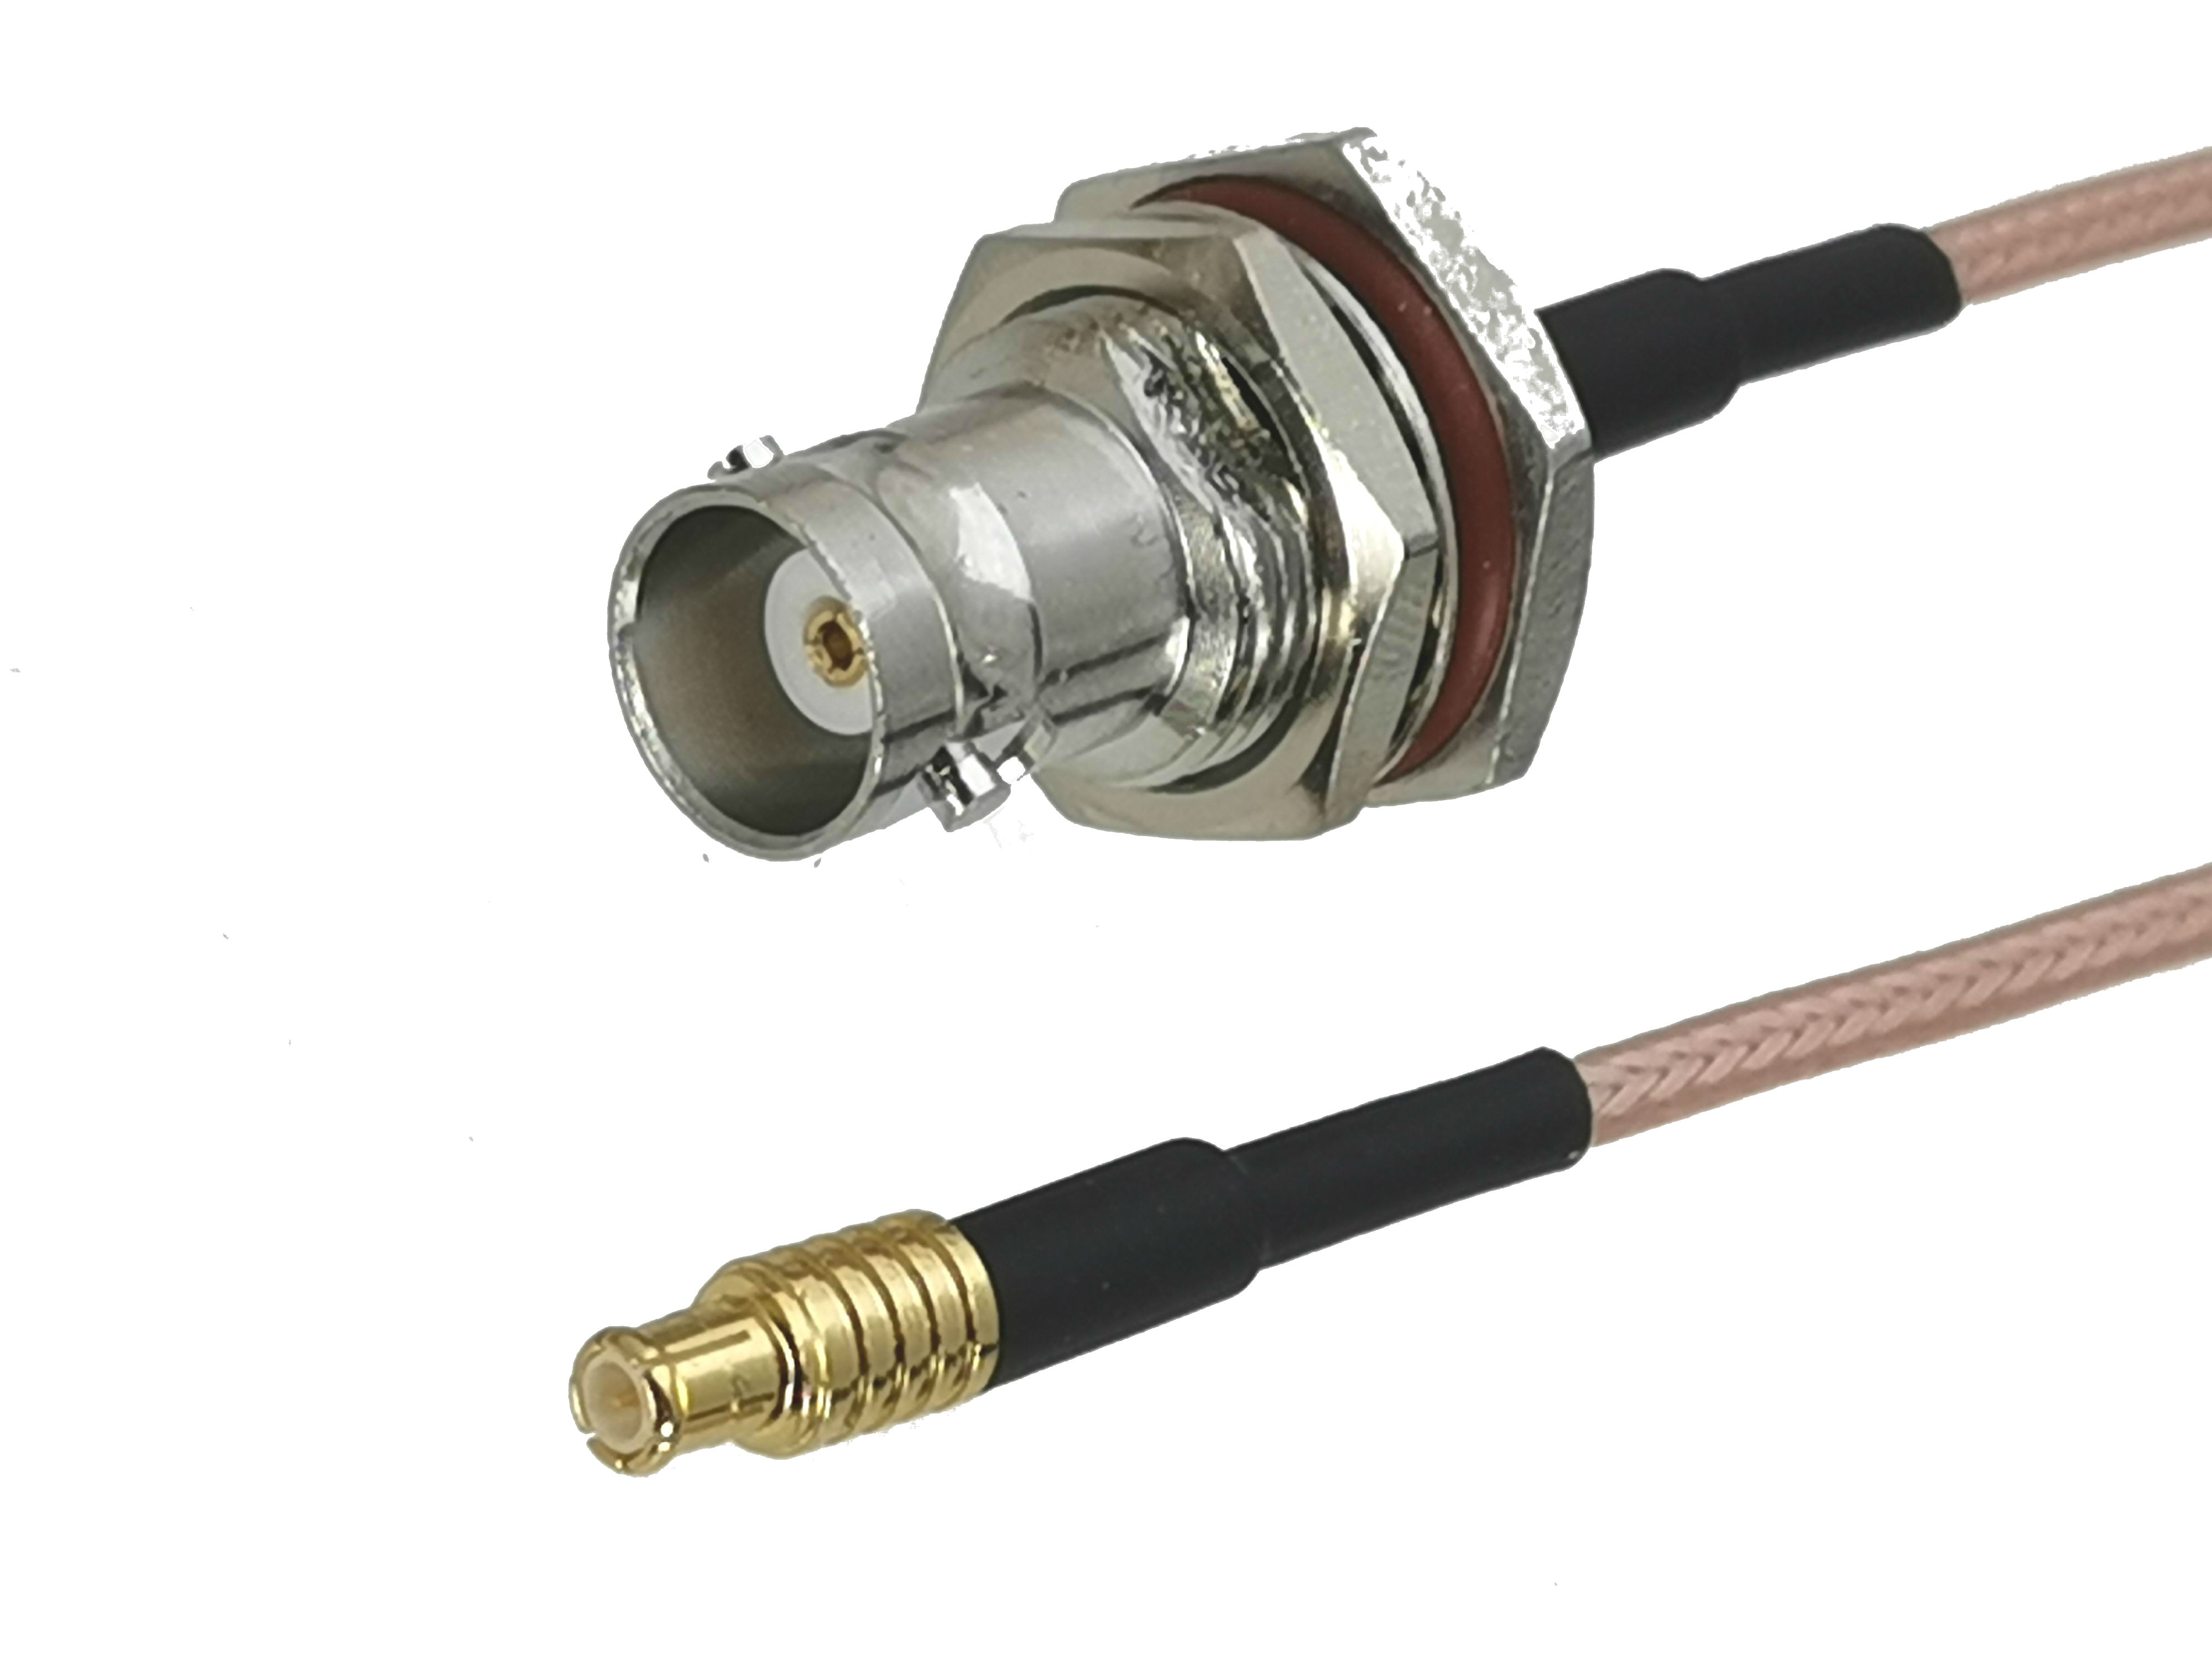 RG316 RF pigtail cable BNC male right angle to BNC female bulkhead